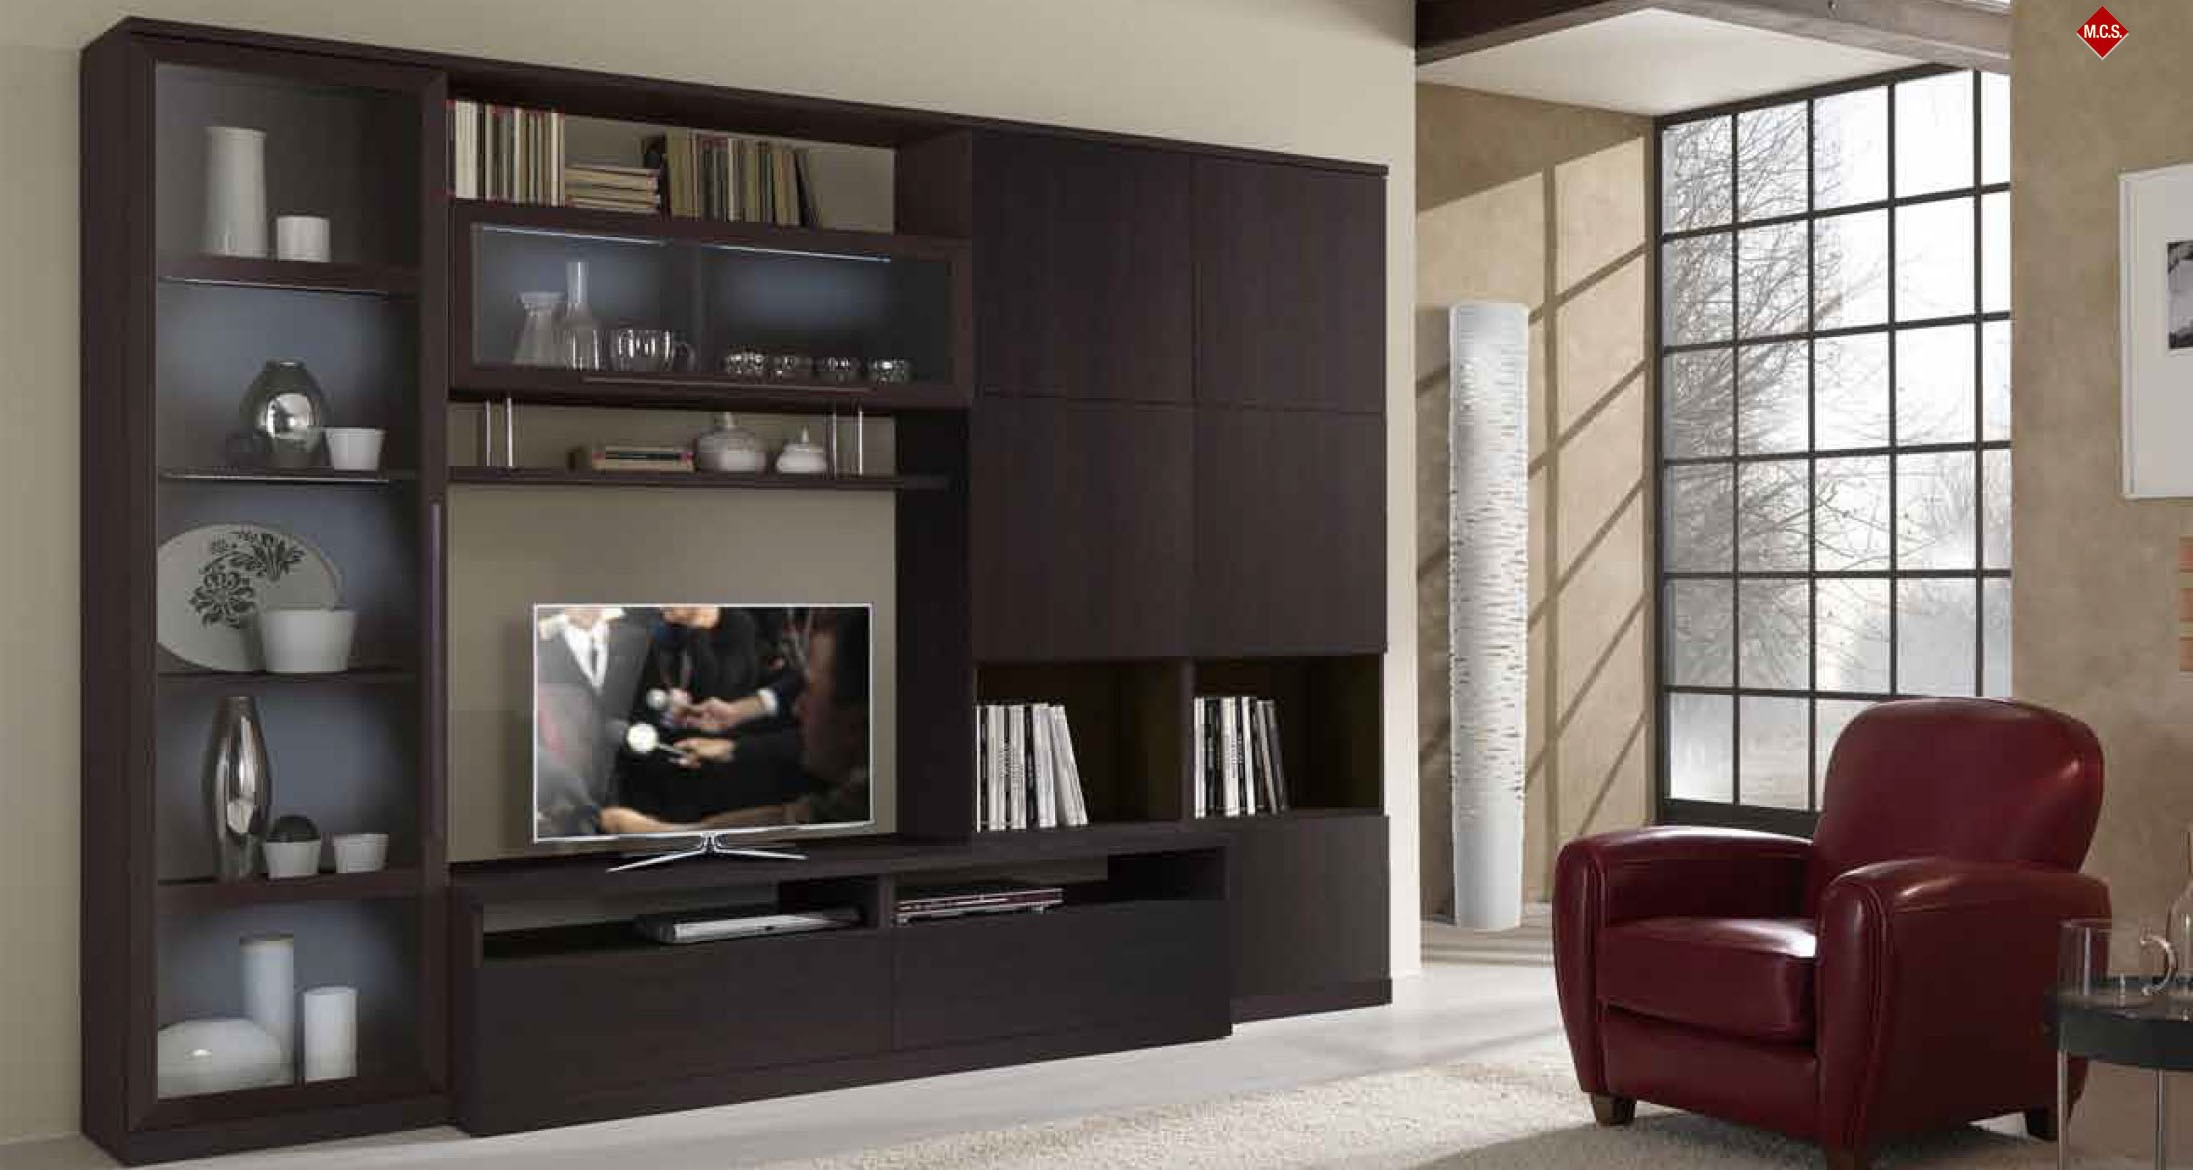 Modern Bedroom With Tv 20 modern tv unit design ideas for bedroom & living room with pictures